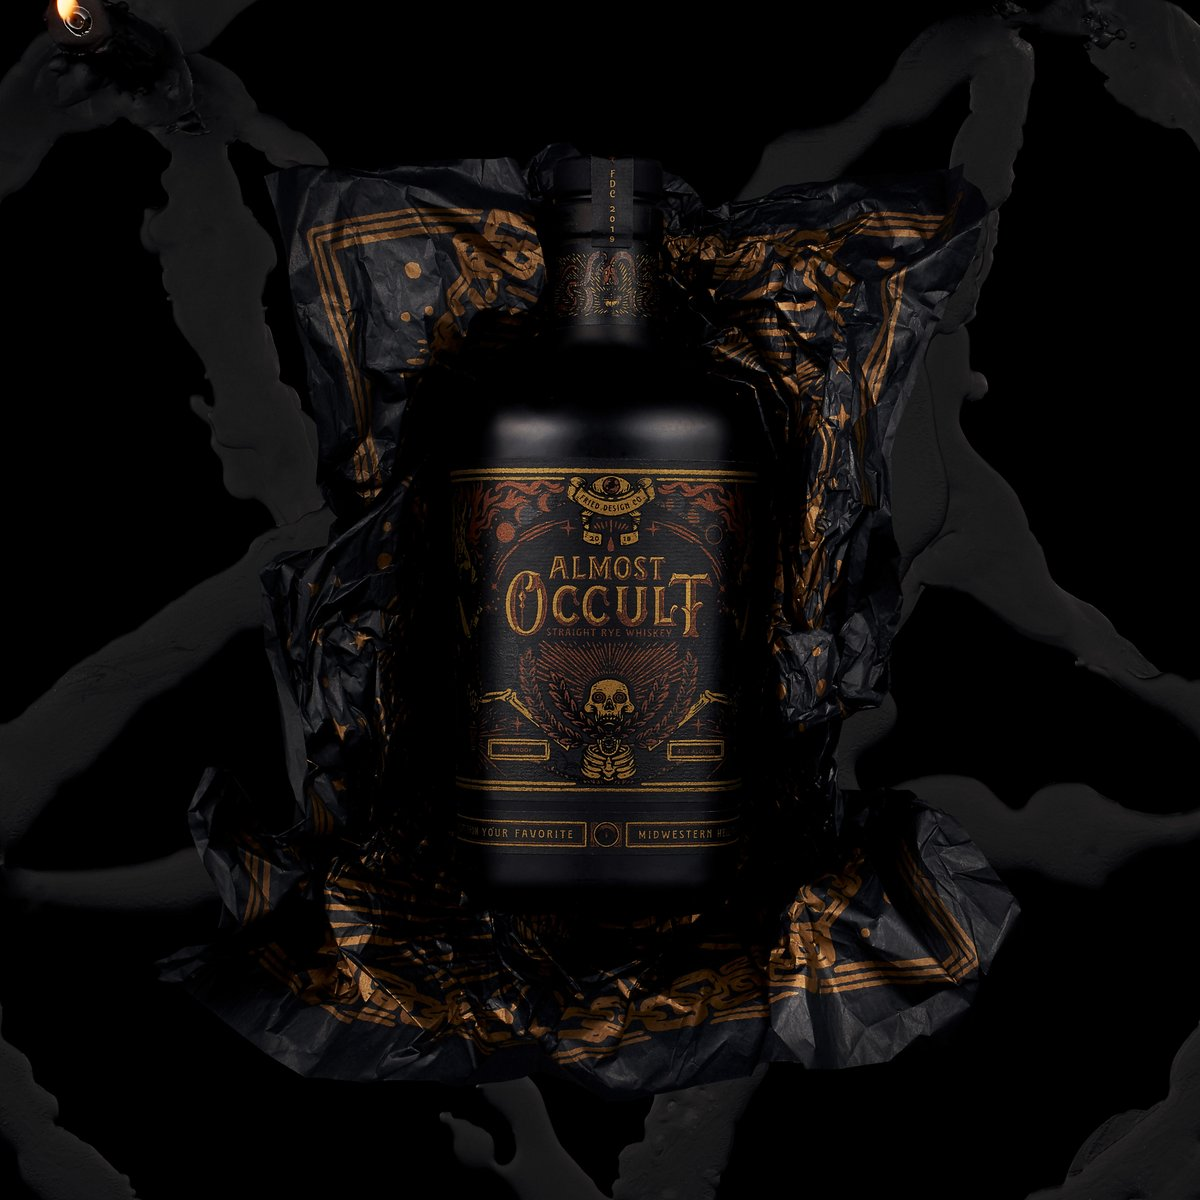 Fried Design Company frieddesignco - Almost Occult Rye Whiskey .  https://worldbranddesign.com/fried-design-company-gets-in-the-spirit-with-almost-occult-rye-whiskey-holiday-gift/ … . #whiskey #spirits #packaging #branddesign #packagingdesign #brandidentity #branding #brand #empaques #logo #design #graphicdesign #typography #illustration #worl…pic.twitter.com/3In29sFBaj